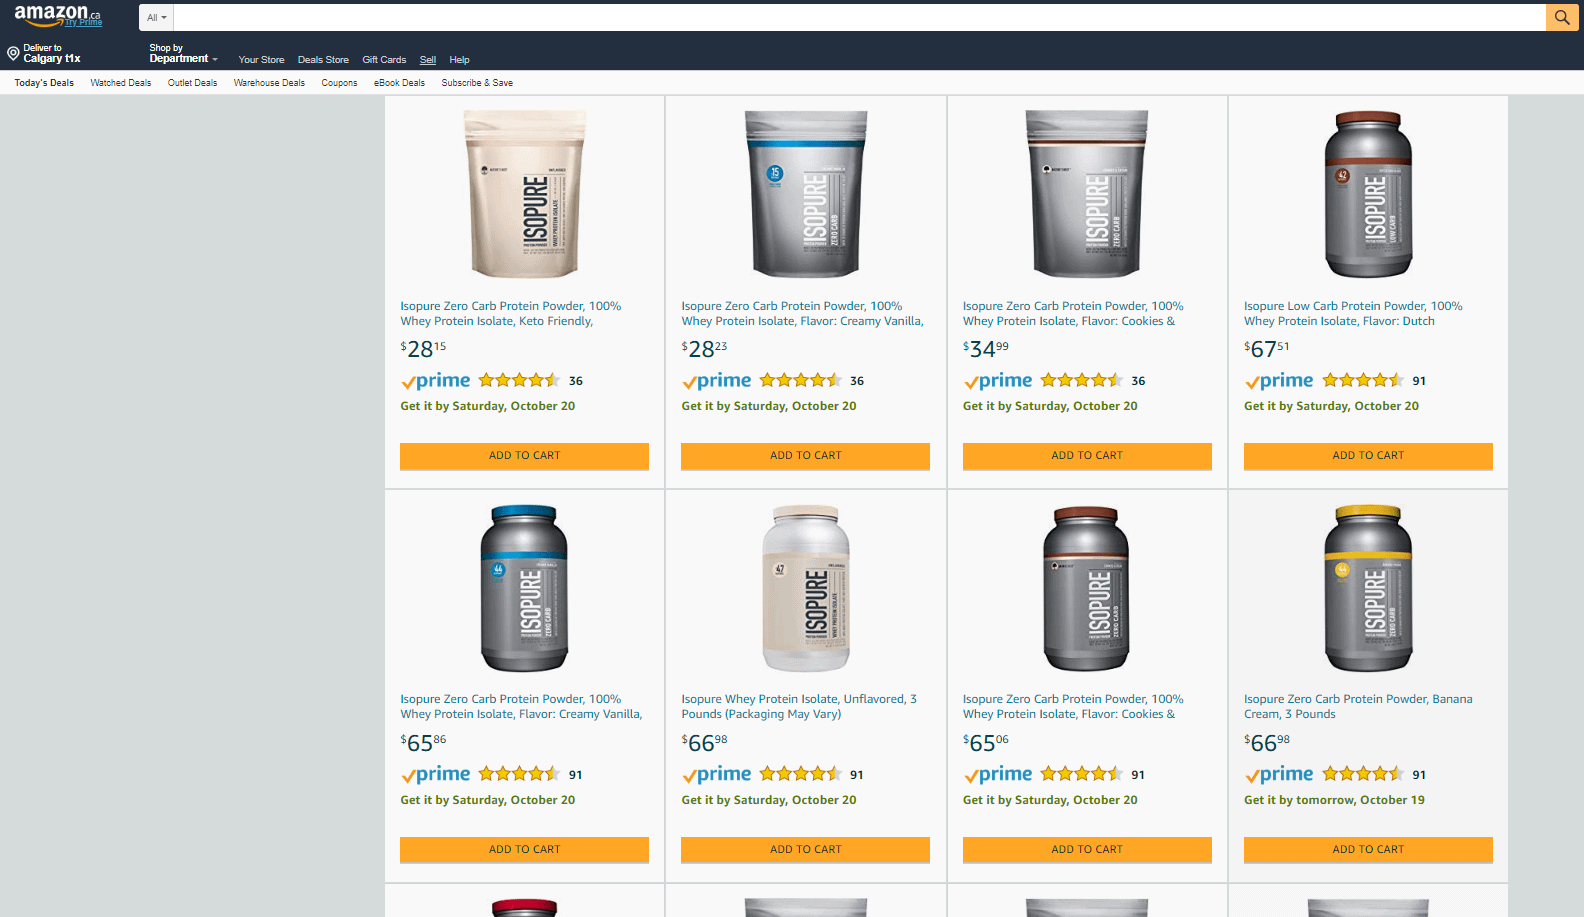 Image of Amazon Product Page